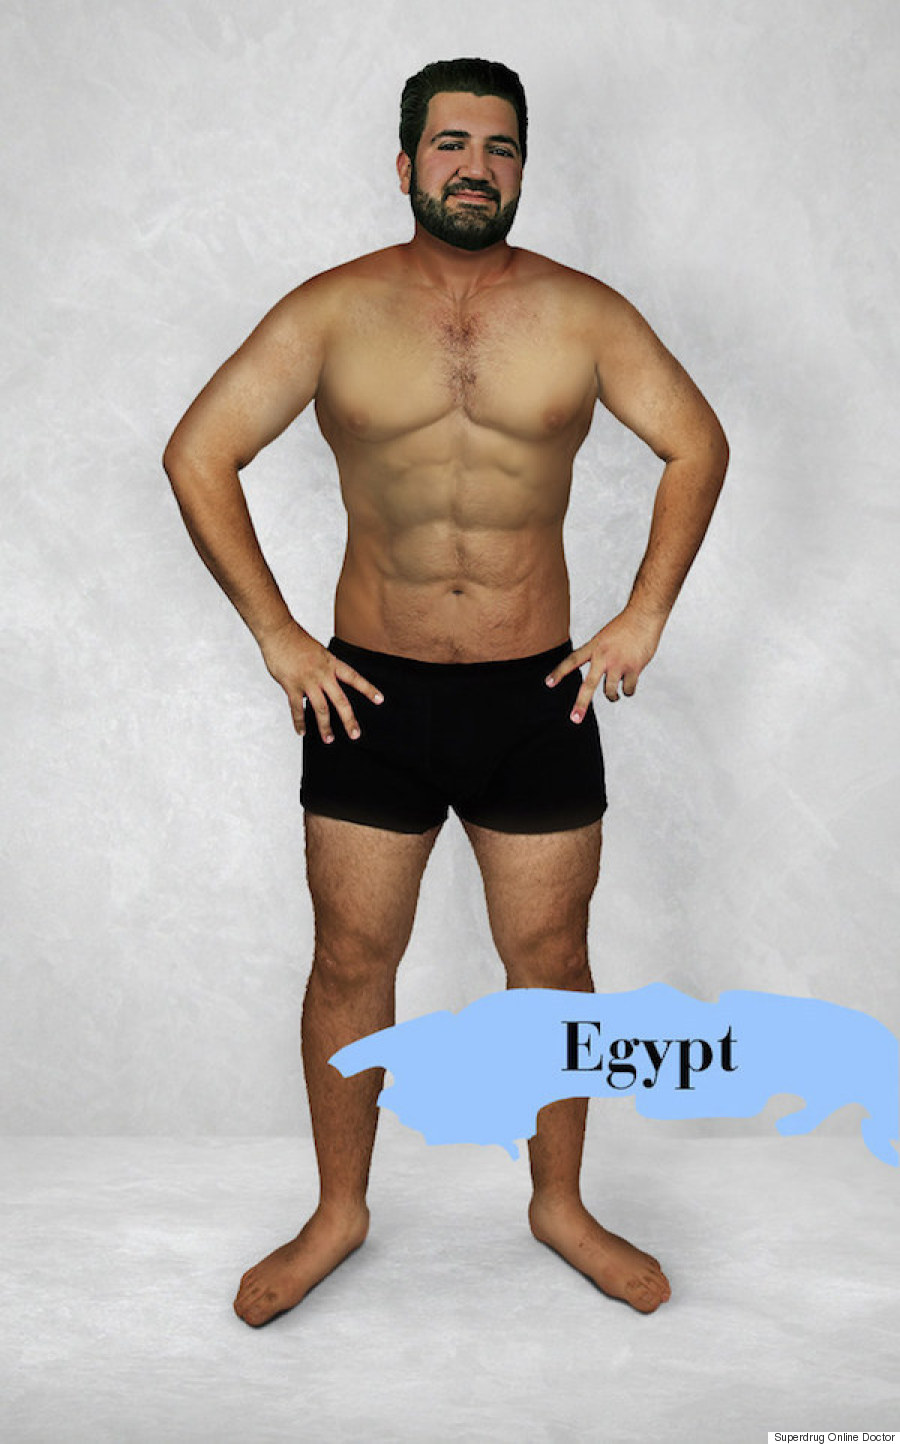 egypt ideal man